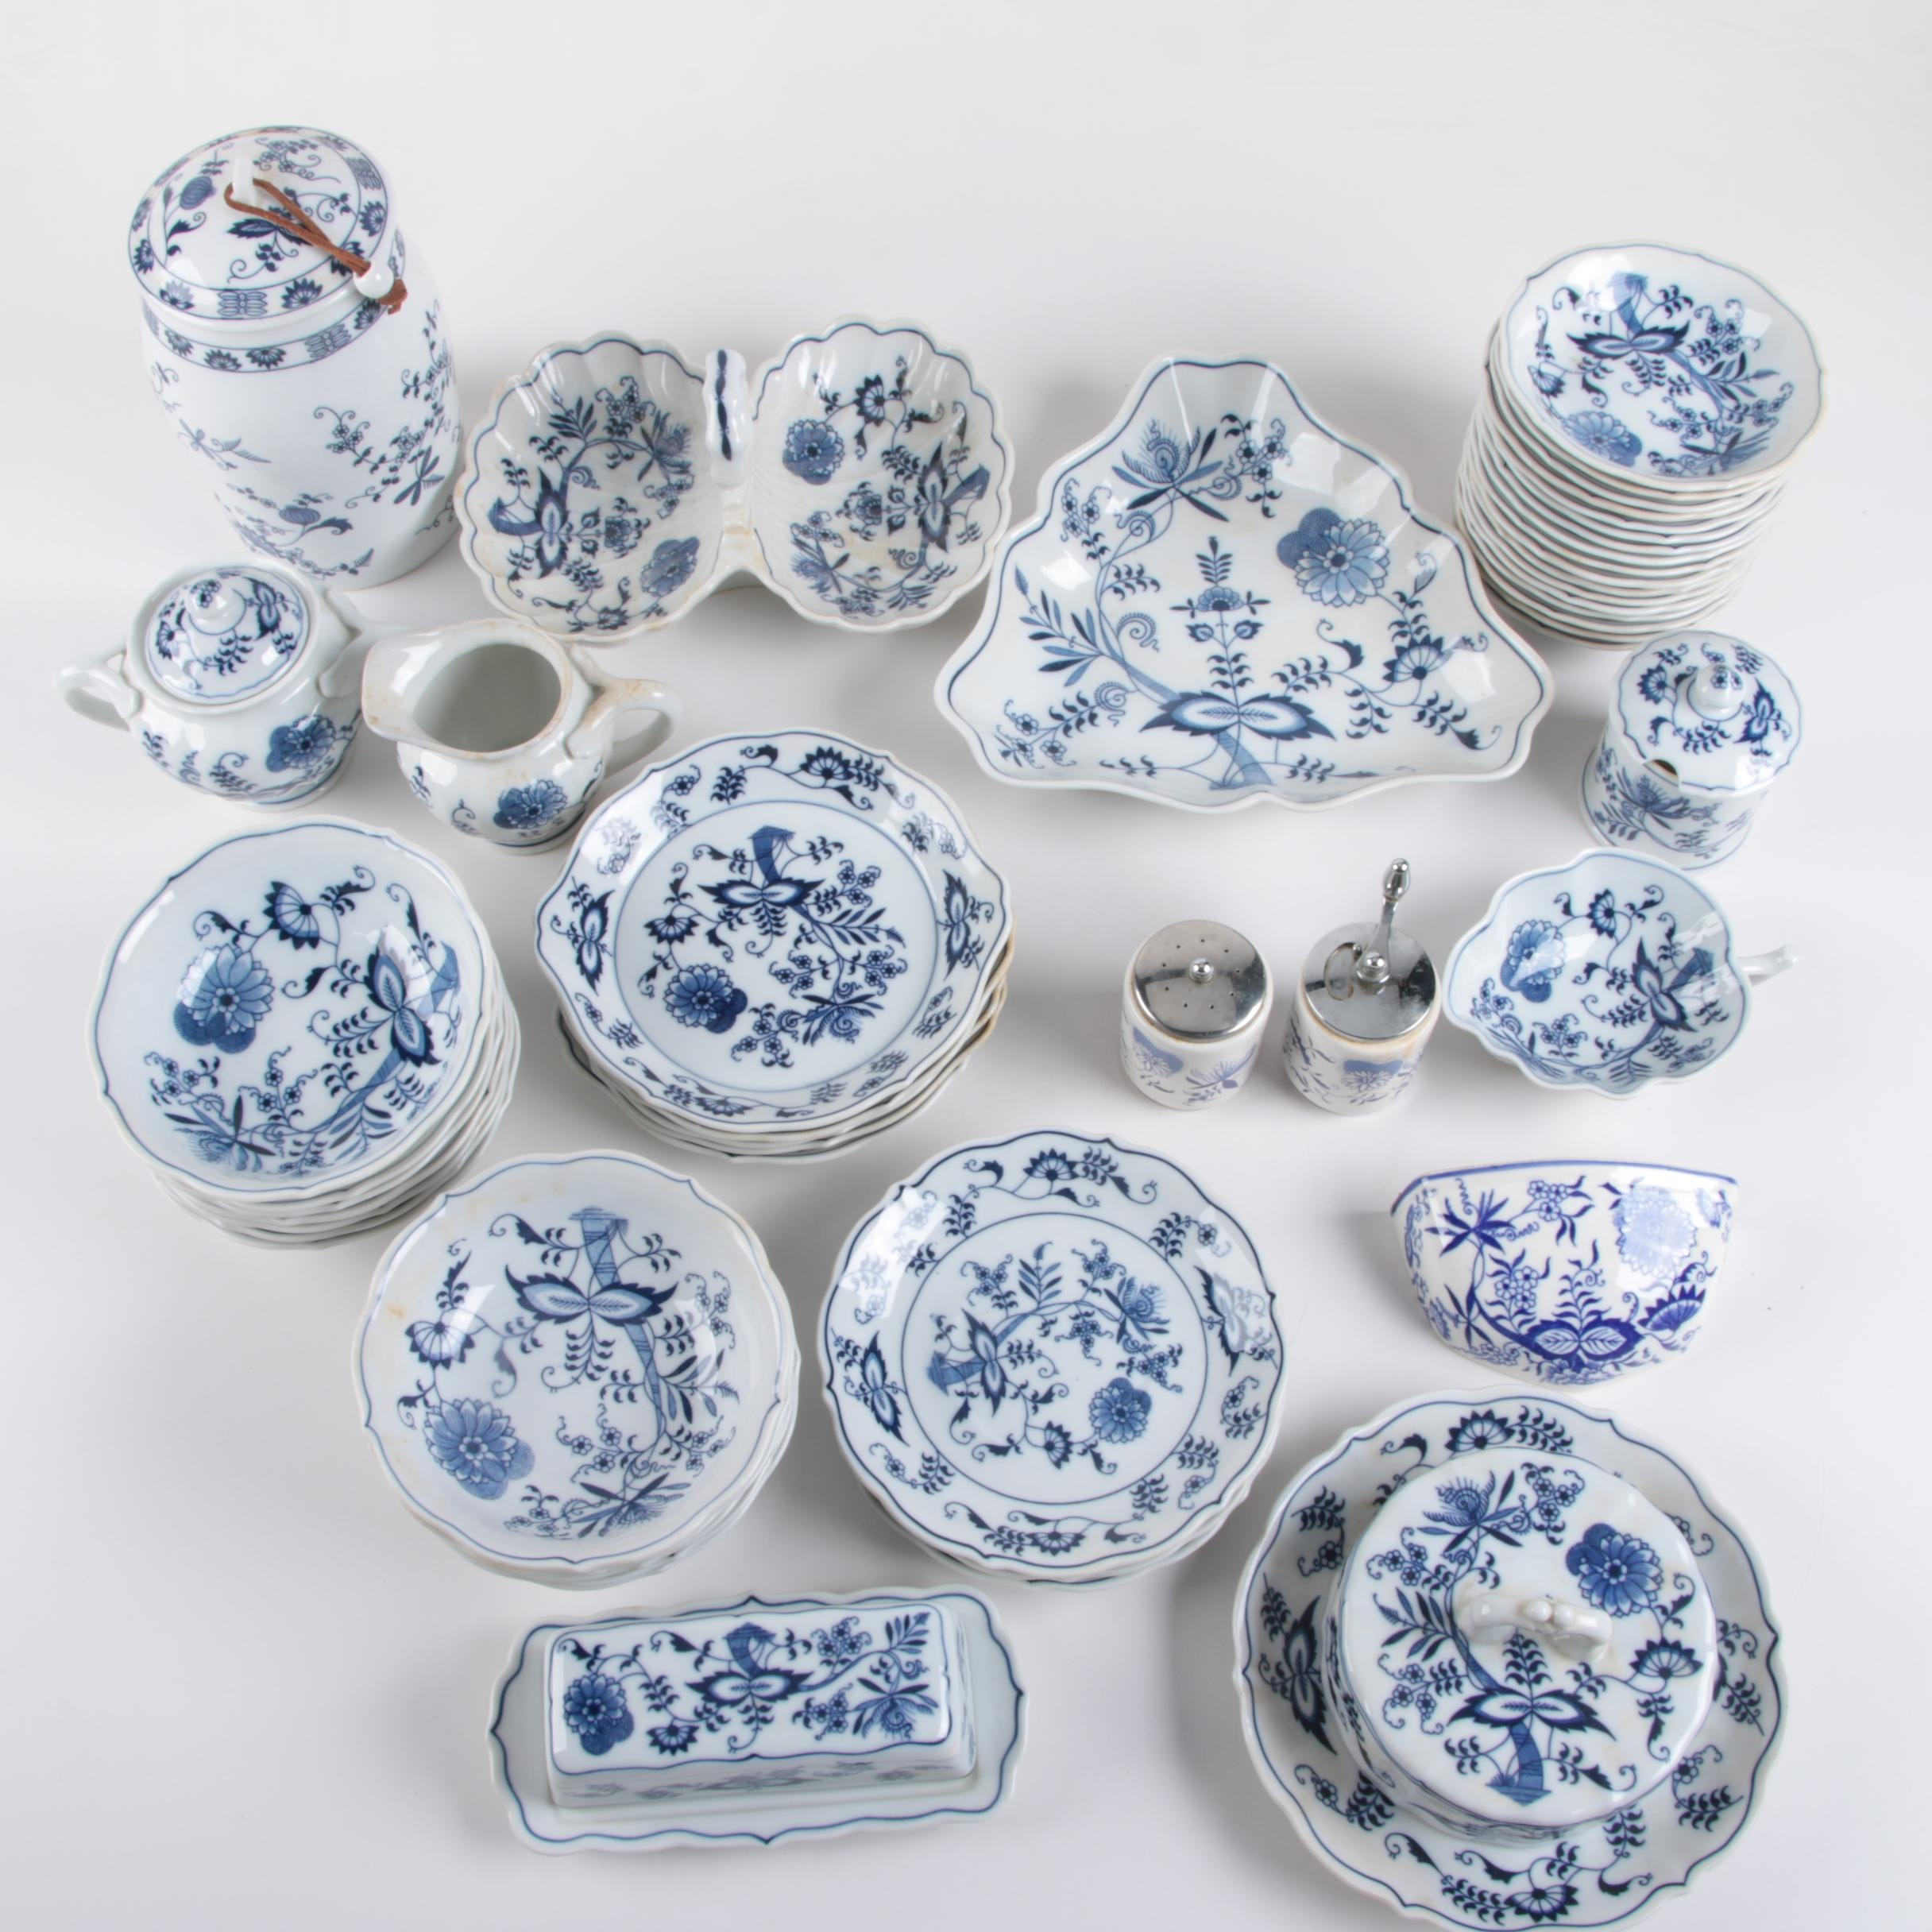 Blue Danube  and  Blue Onion  Porcelain Tableware ...  sc 1 st  EBTH.com & Blue Danube